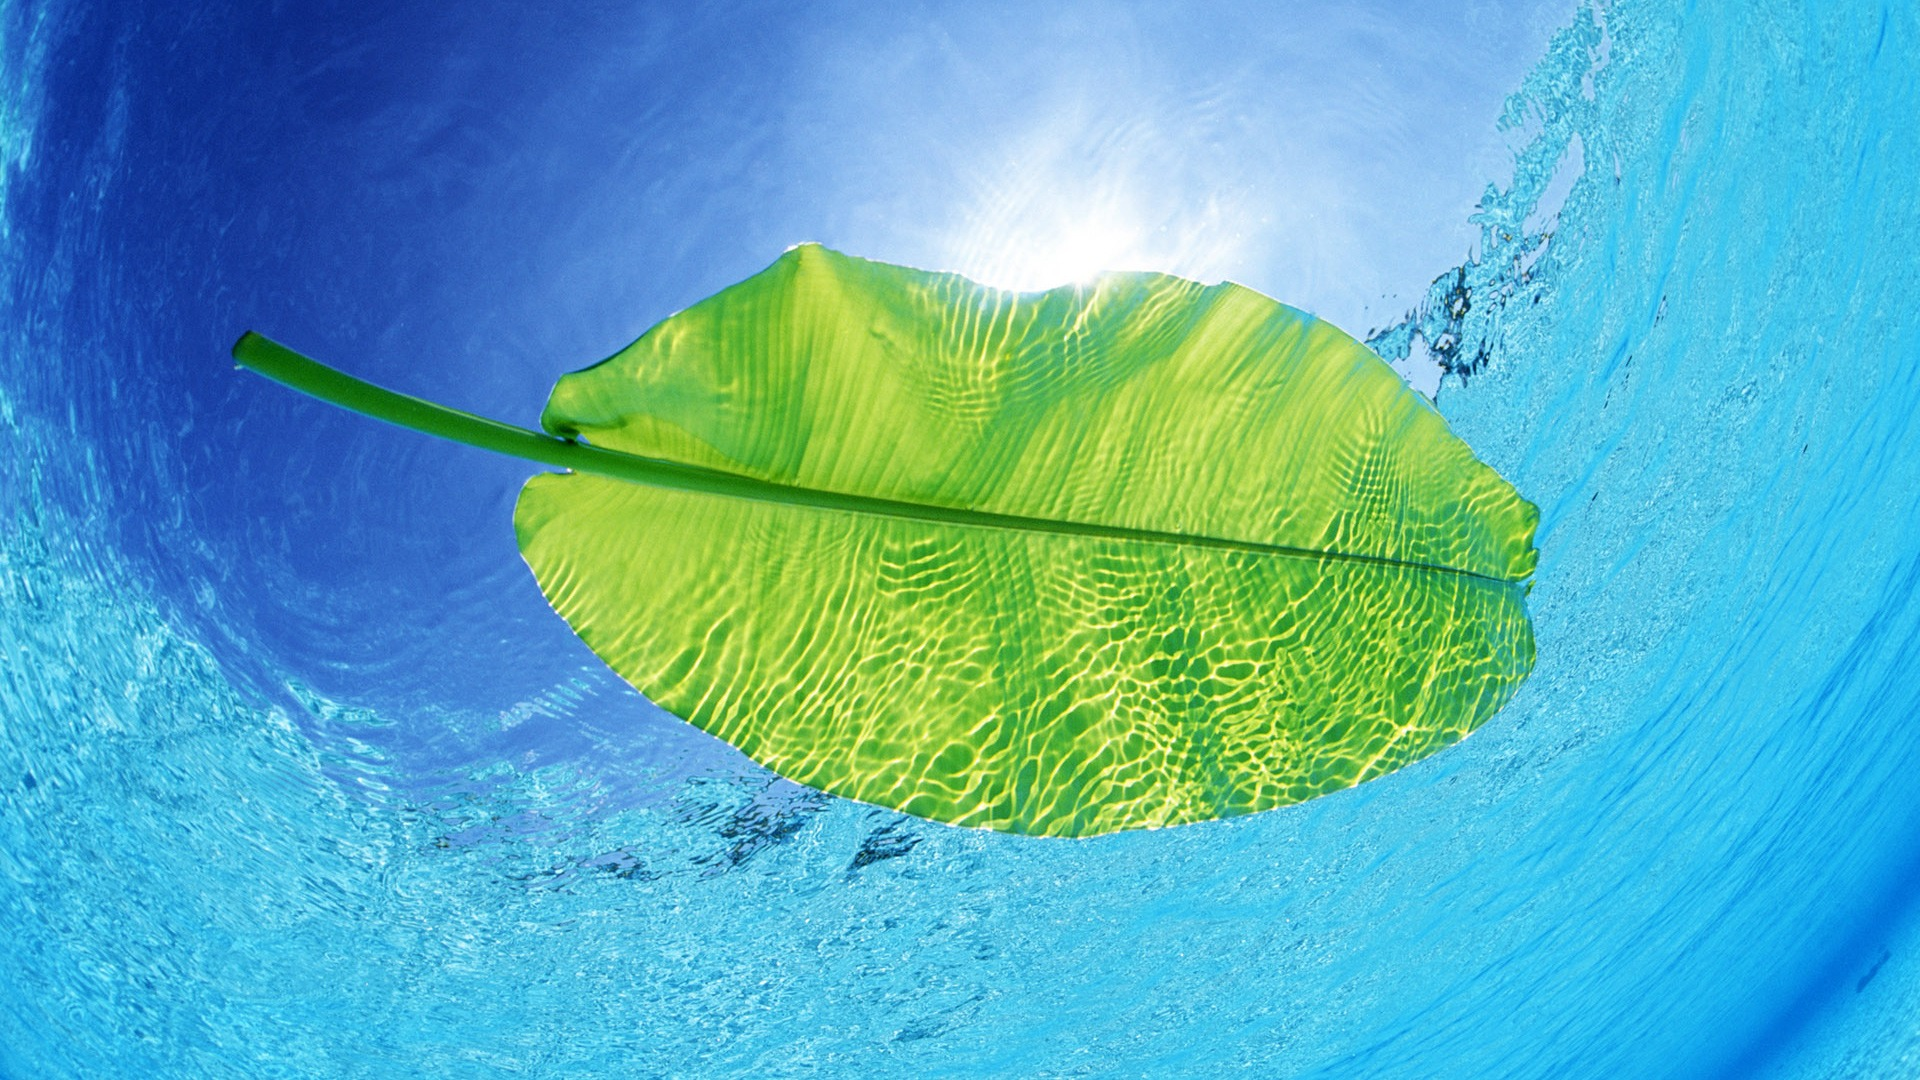 Swimming Leaf Wallpaper Other Nature Wallpapers Ultra Hd